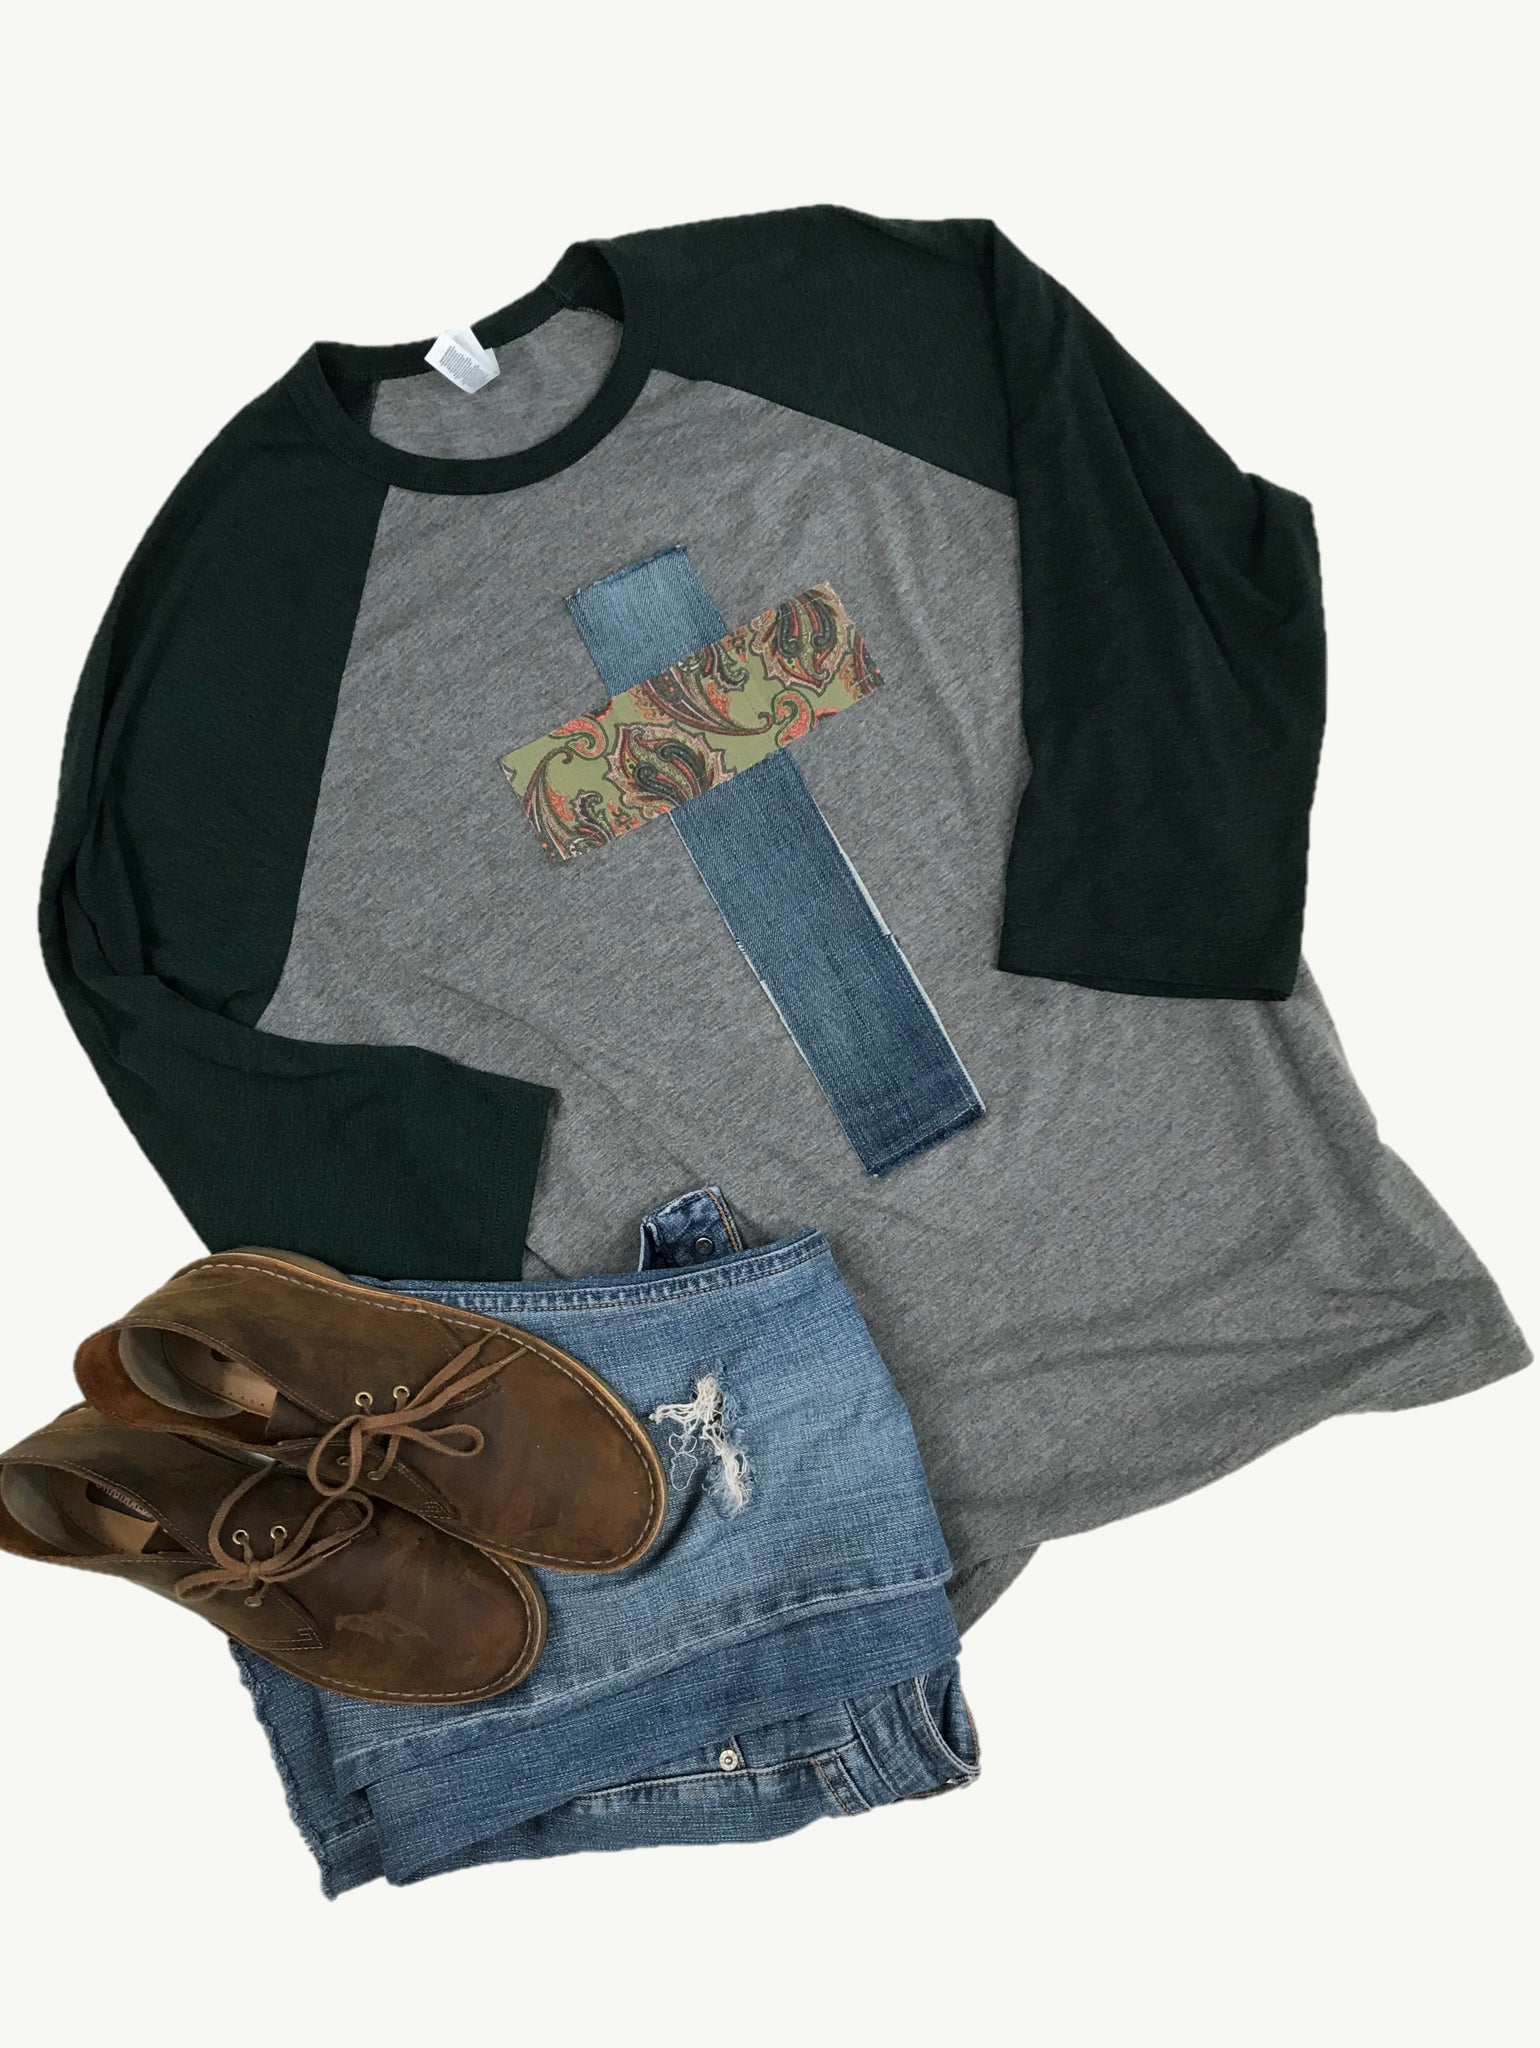 Raglan Tee Heathered Emerald and Gray, Paisley Corduroy and Denim, Size XL